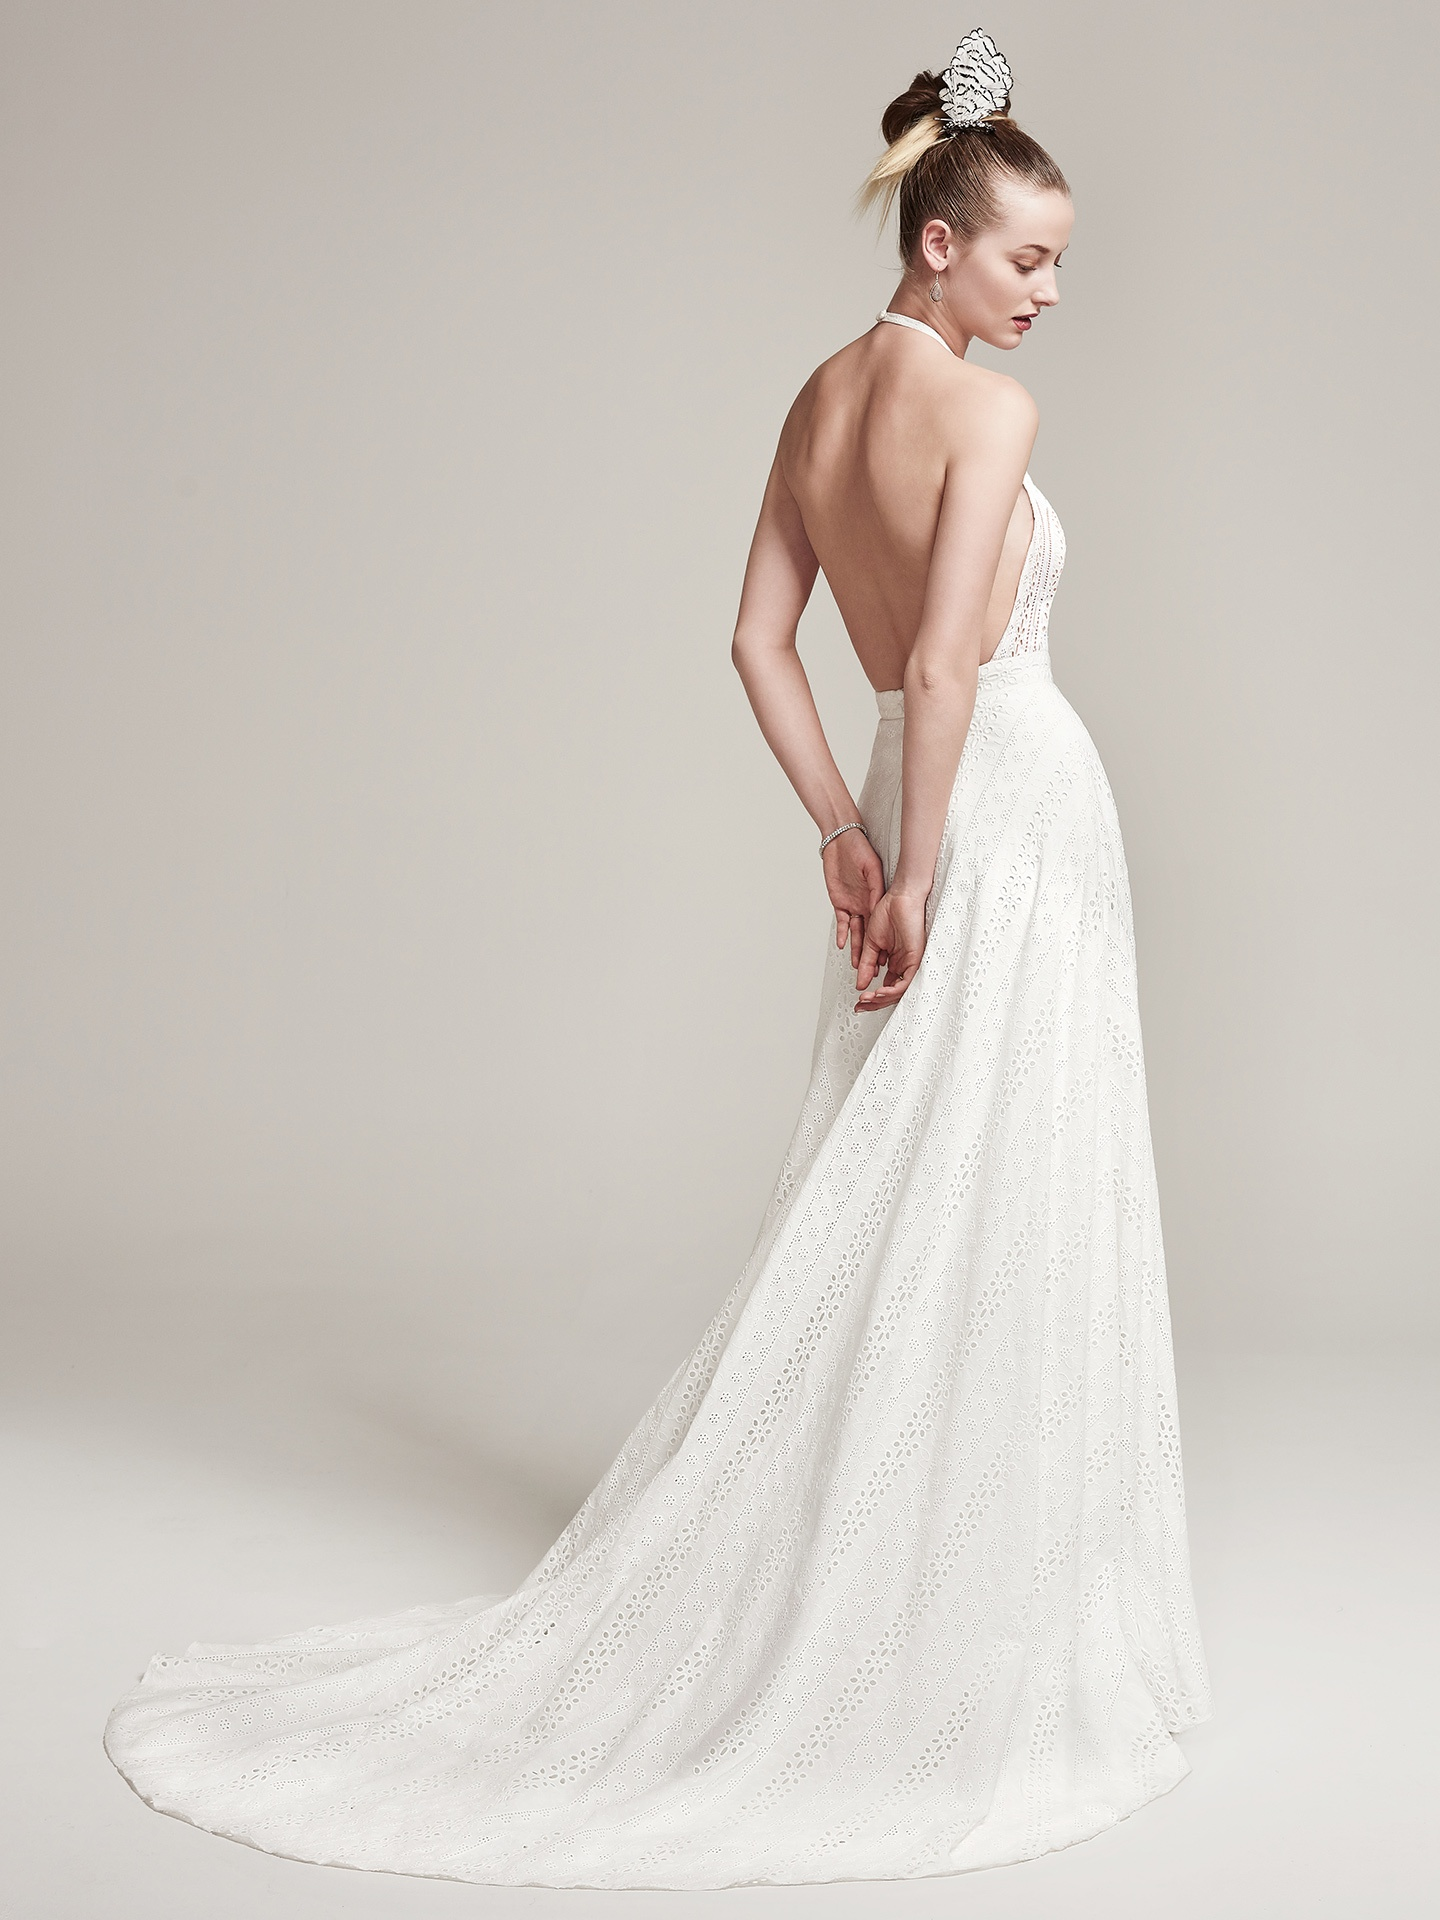 Seven Types Of Lace To Know When Ping For A Wedding Dress Maggie Sottero S